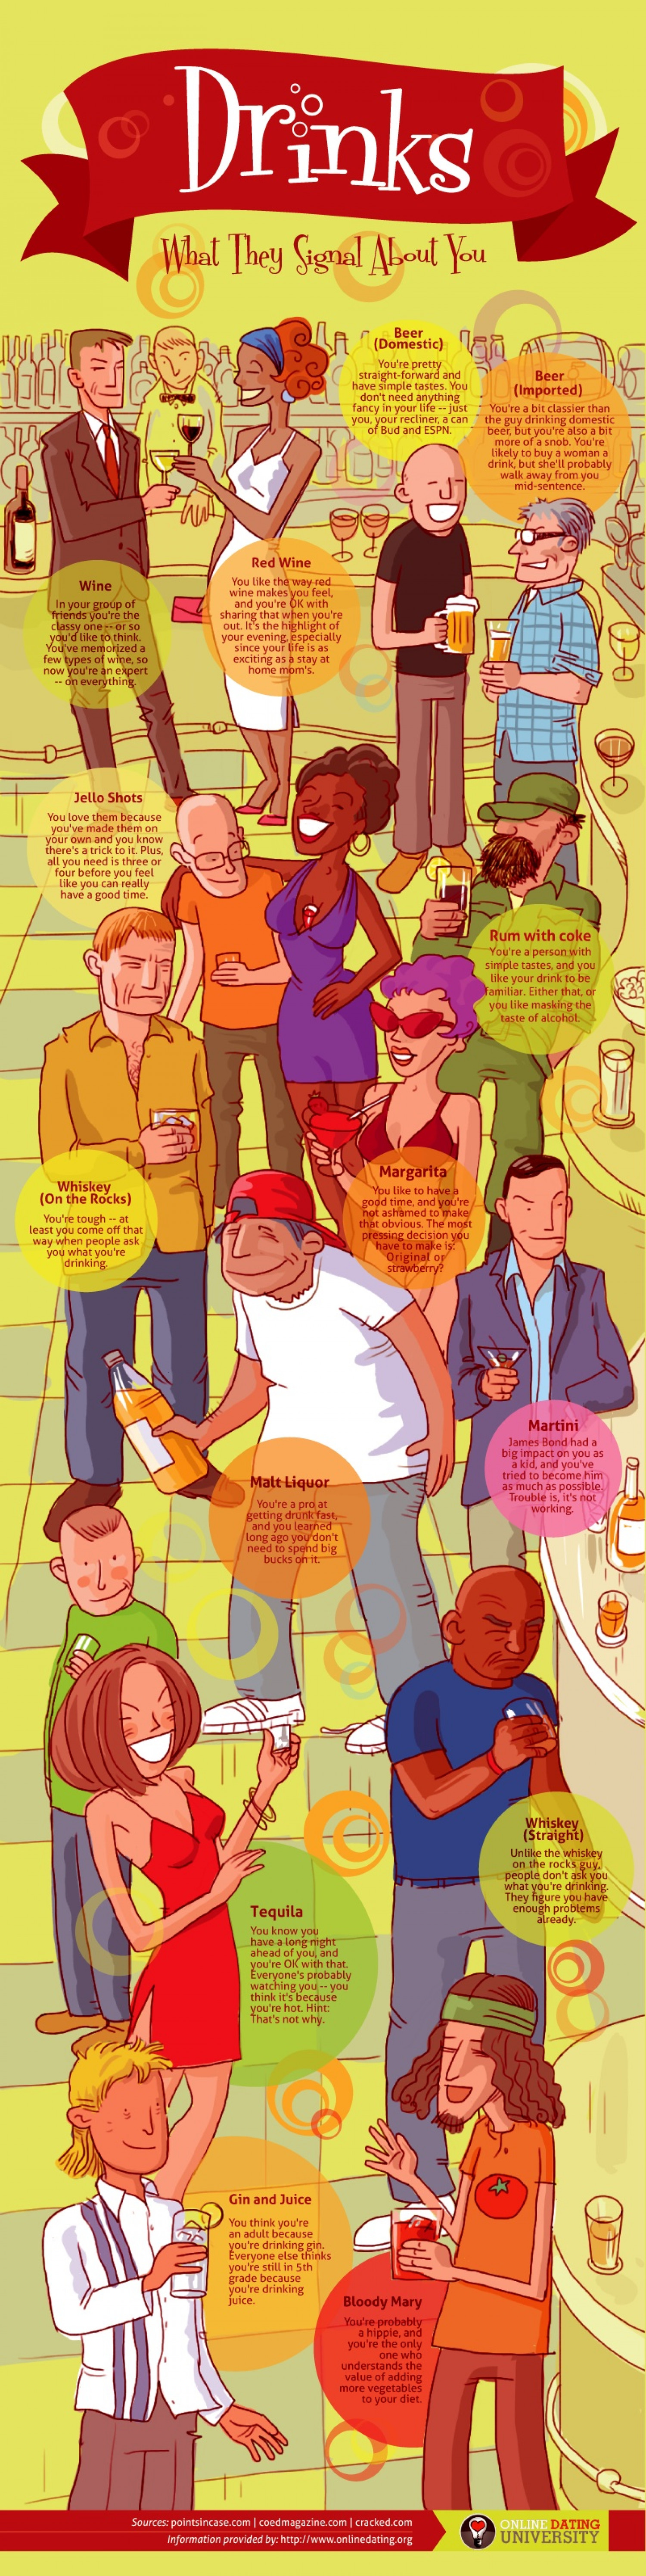 What Your Drink Says About You Infographic